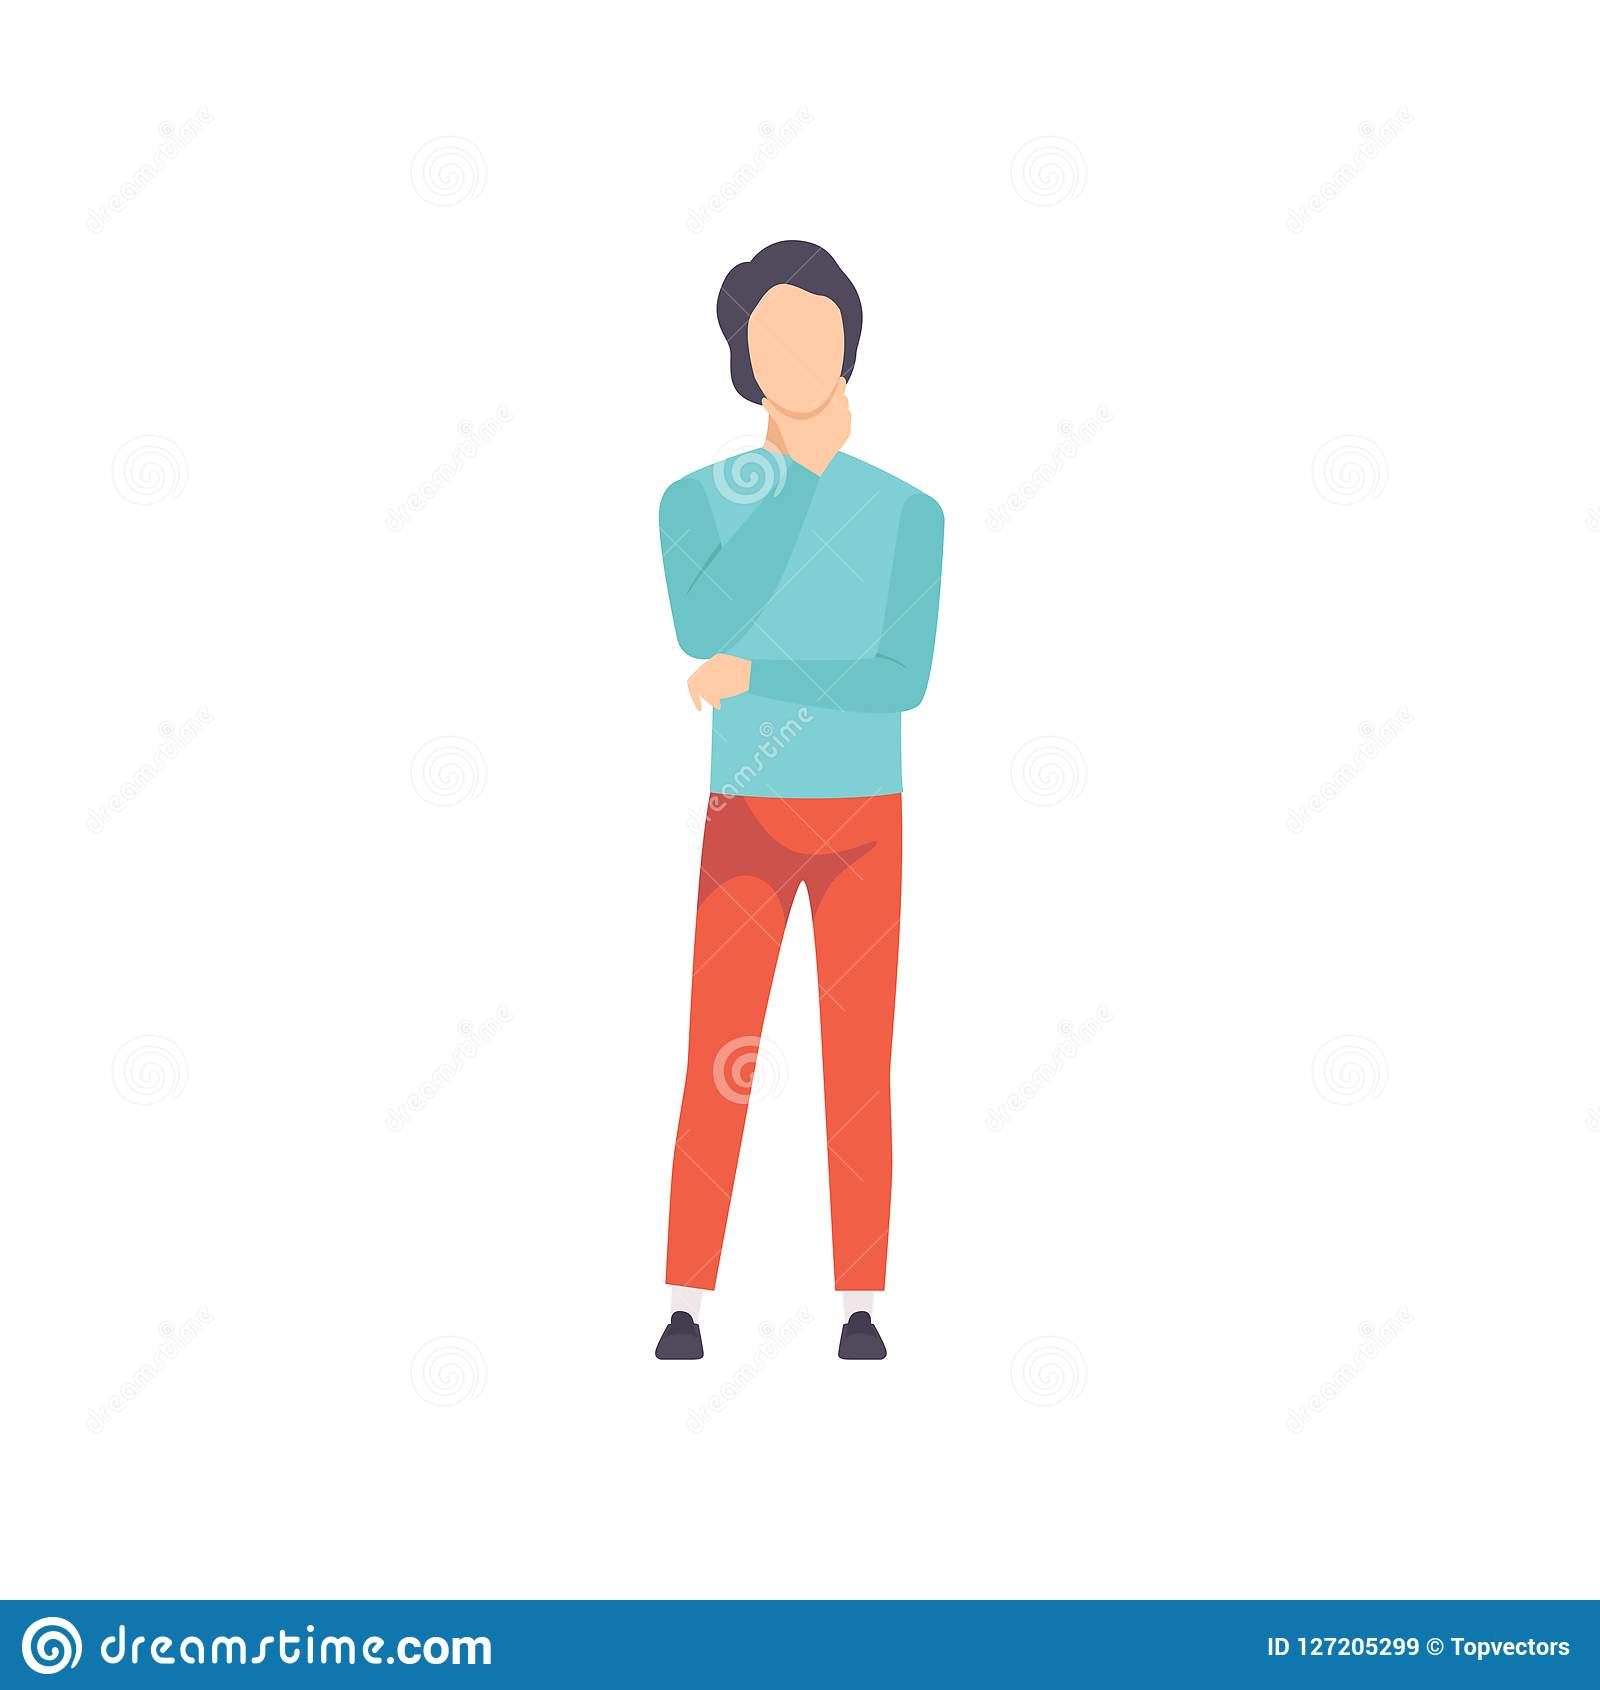 Young Man Thinking Of Something Vector Illustration On A White Background Stock Vector Illustration Of Standing Solution 127205299 Well, would you describe yourself as a logical or a creative person? https www dreamstime com young man thinking something vector illustration white background young man thinking something vector illustration image127205299